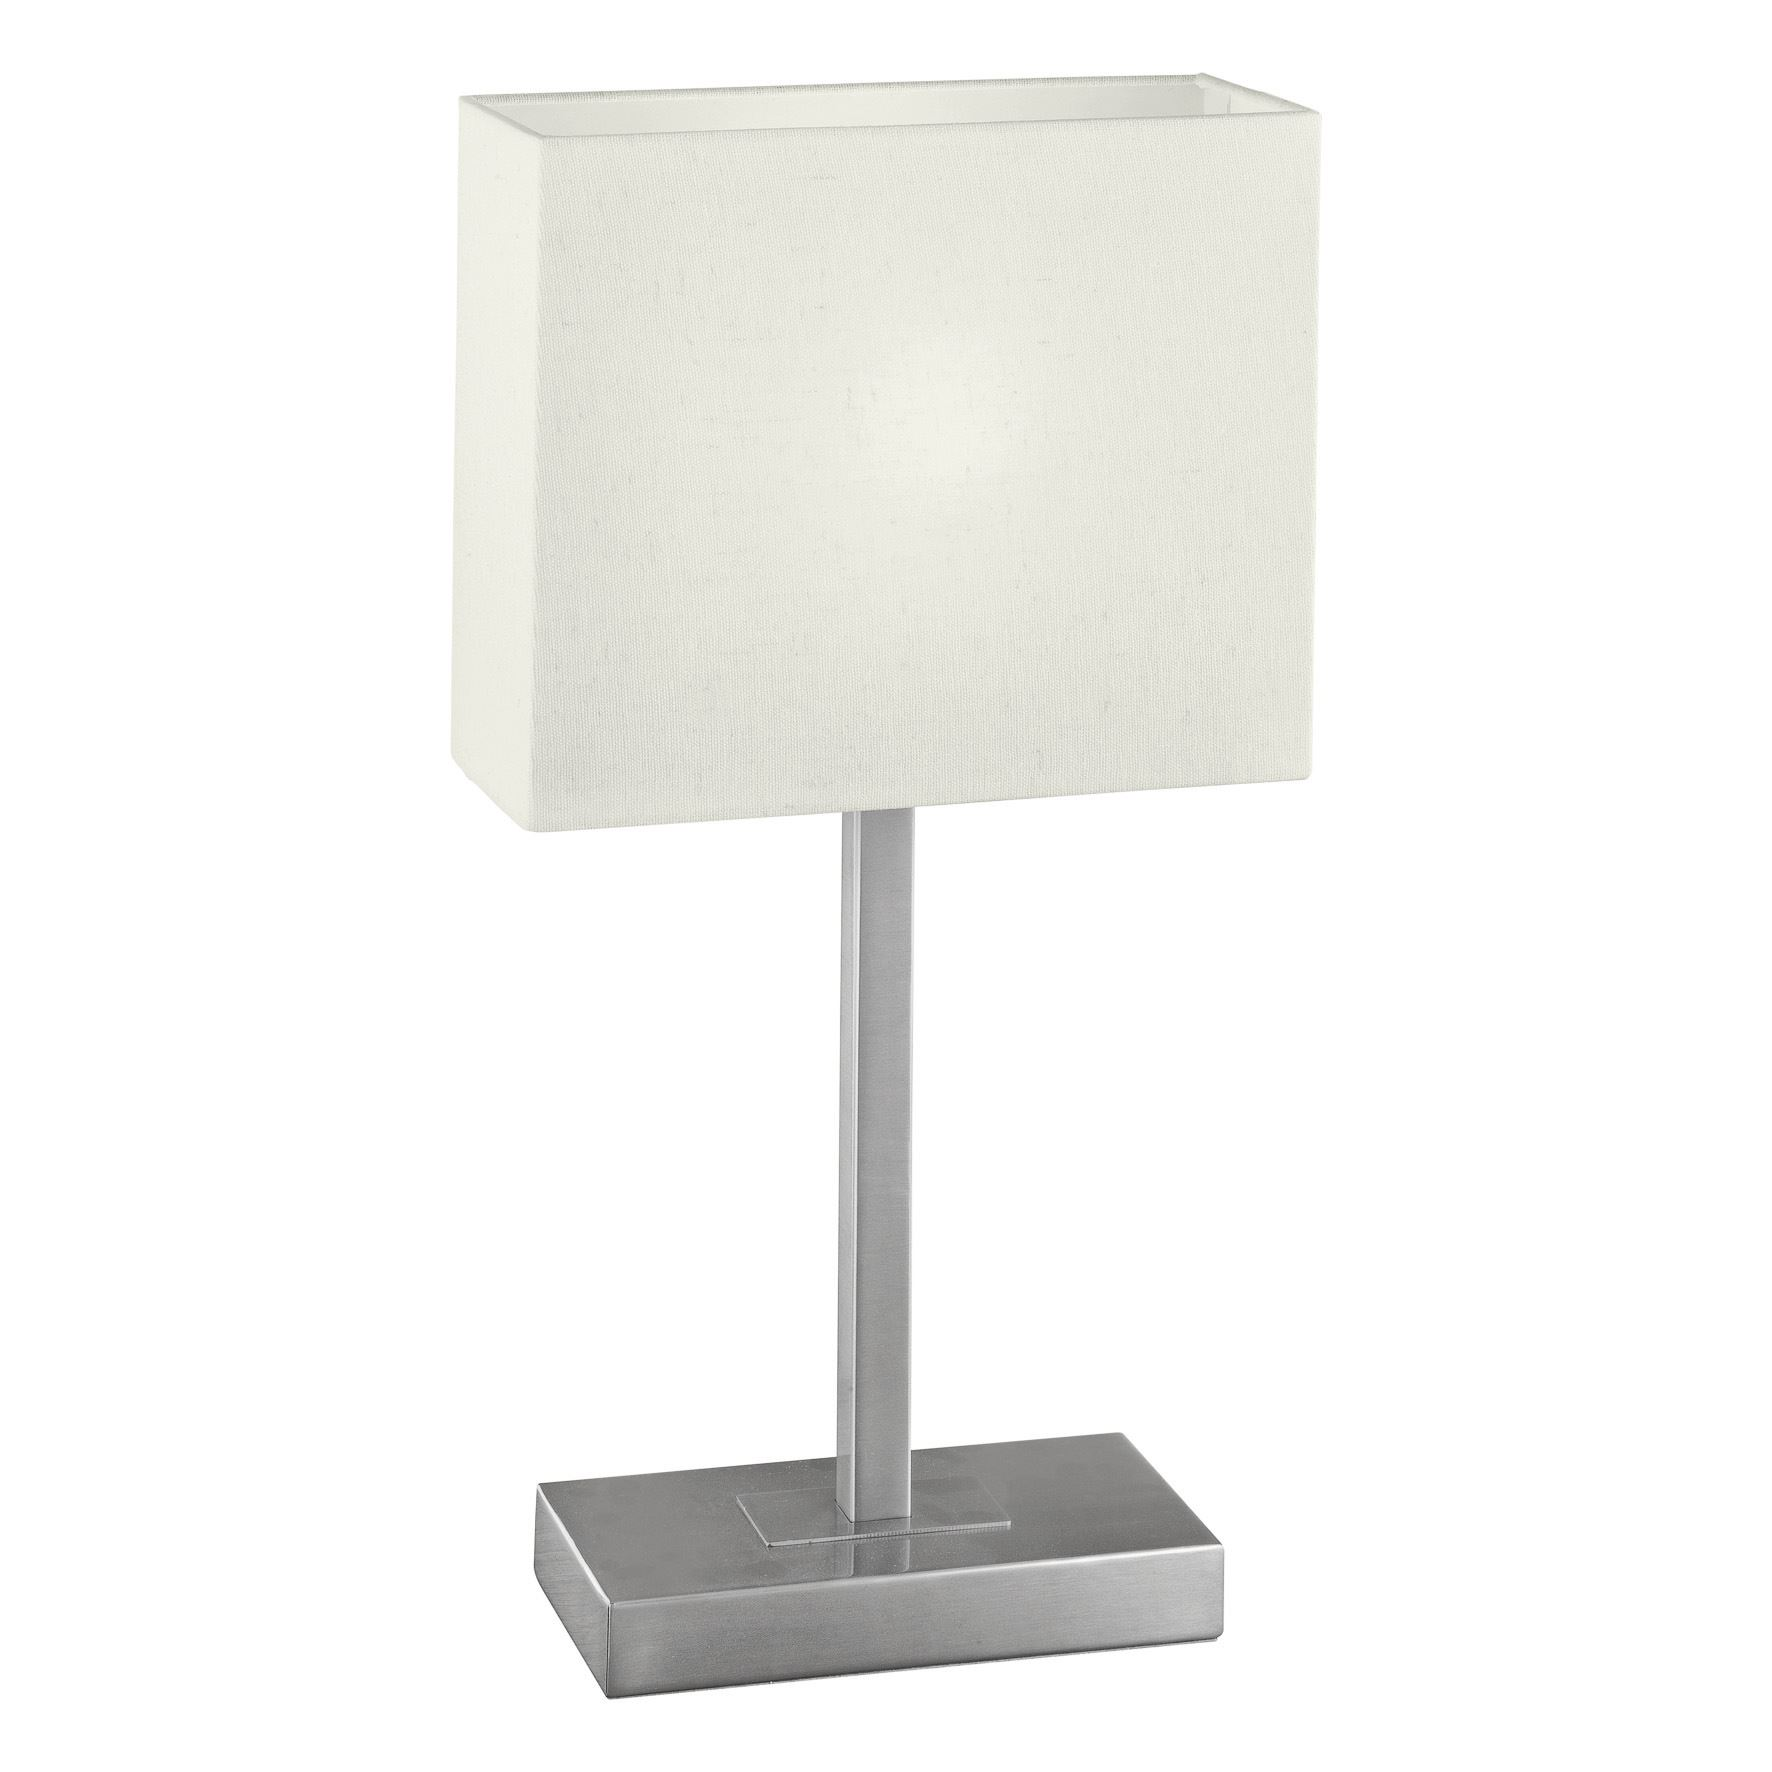 Pueblo 1 Table Lamp 1 Light Touchdimmer Switch Fabric Beige Shade